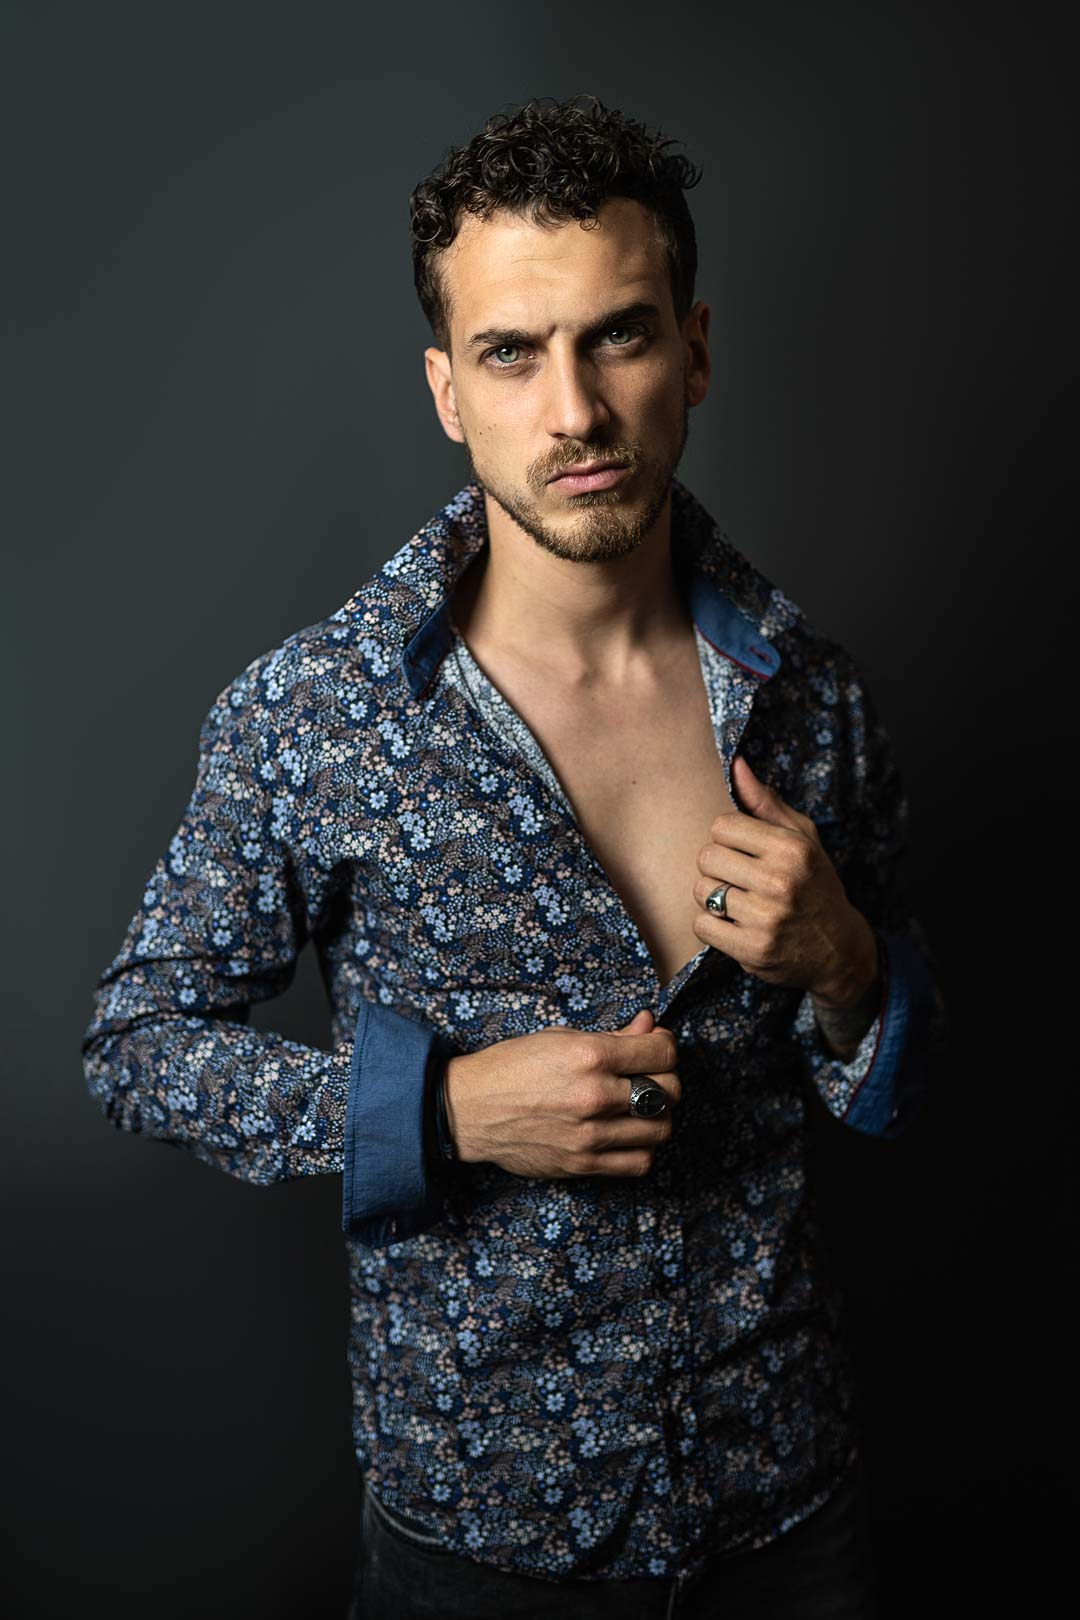 Male model unbuttoning his shirt in a photo studio